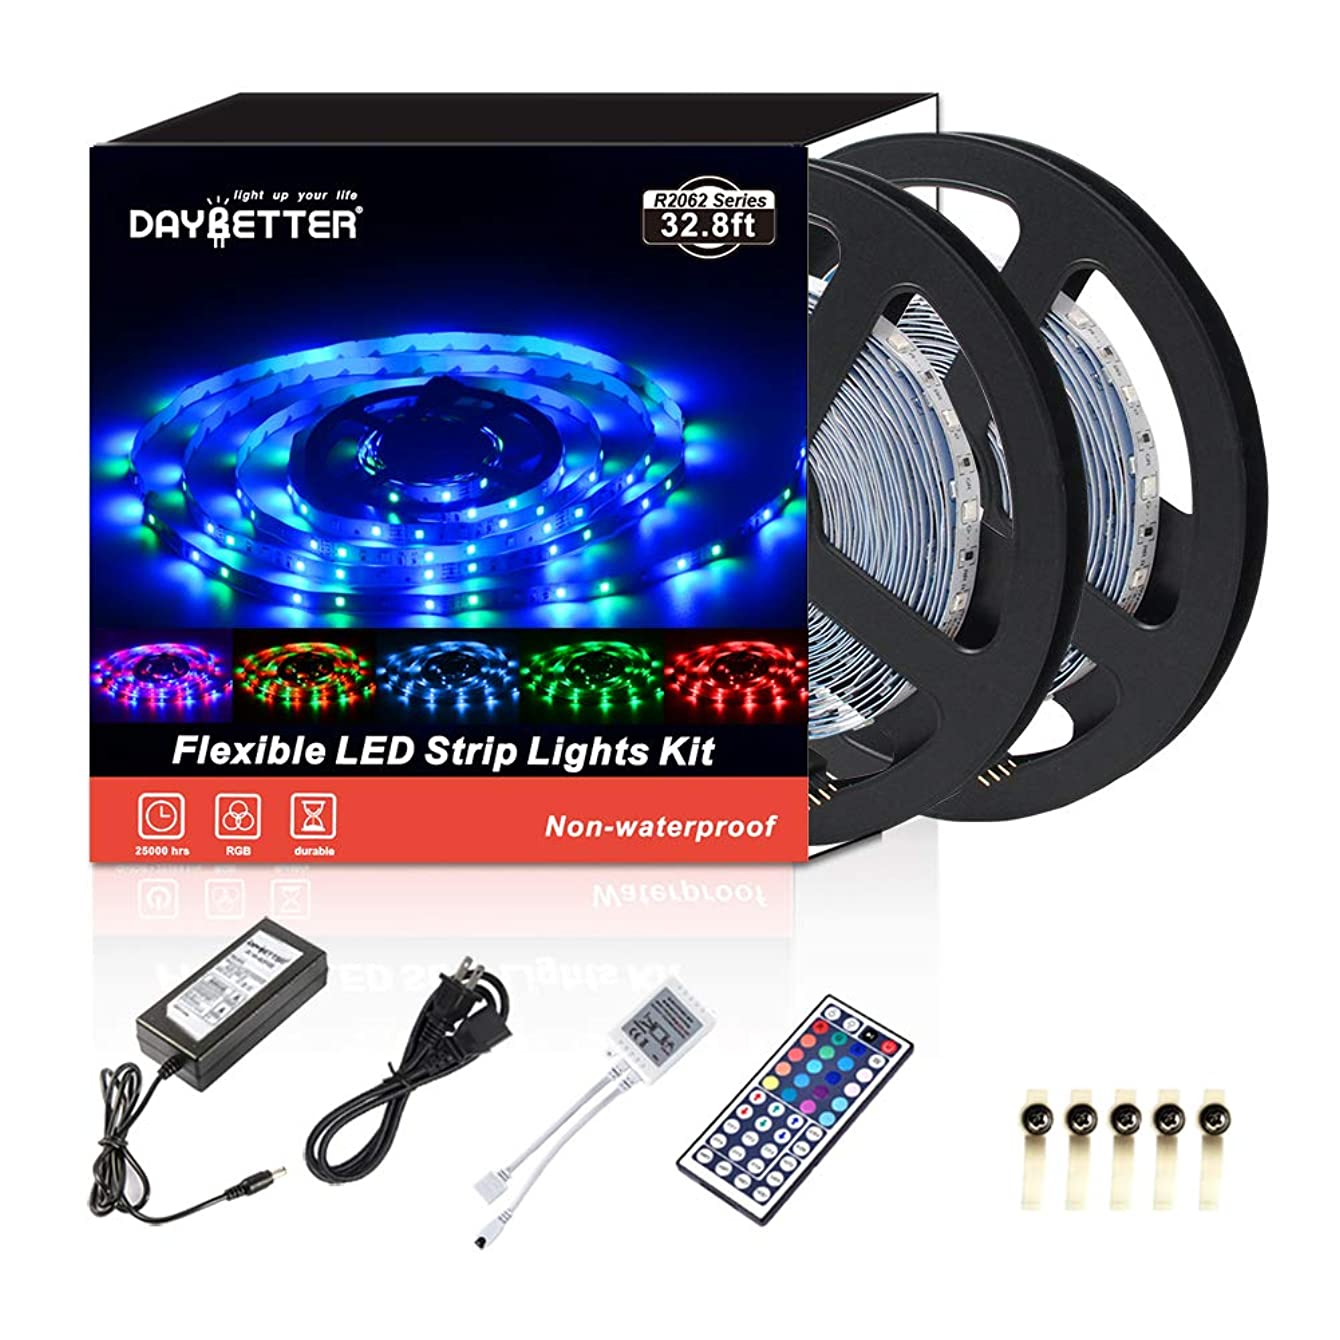 Led Strip Lights 32.8ft 10m 600LEDs Non-waterproof Flexible Color Changing RGB SMD 3528 LED Strip Light Kit with 44 Keys IR Remote Controller and 12V Power Supply